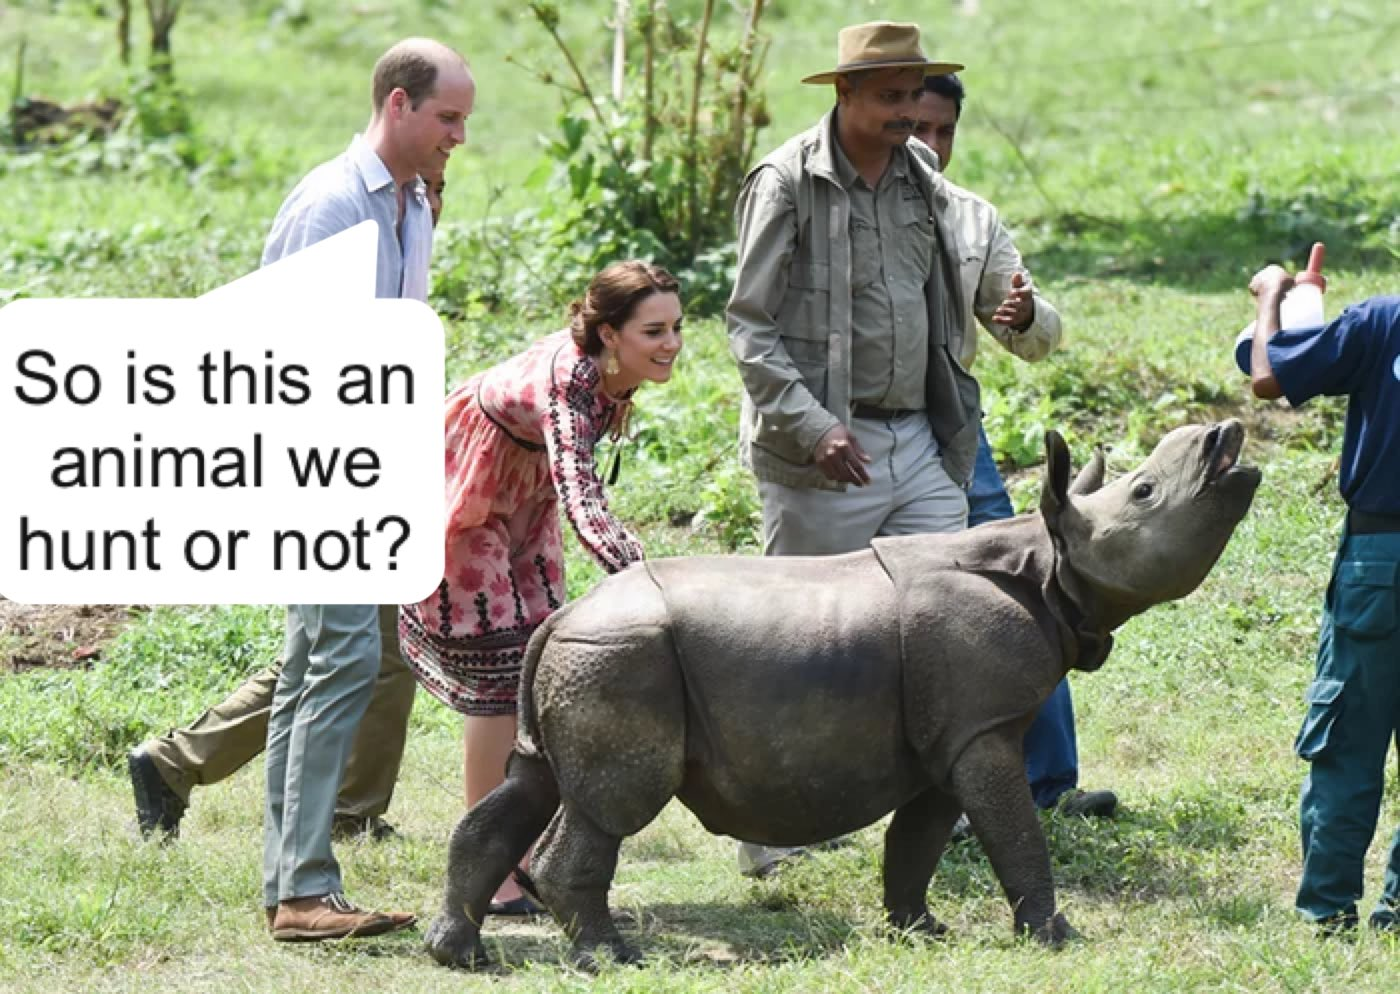 William and Kate feed baby rhinos and elephants in animal sanctuary. https://t.co/Q4gBM4UVZn